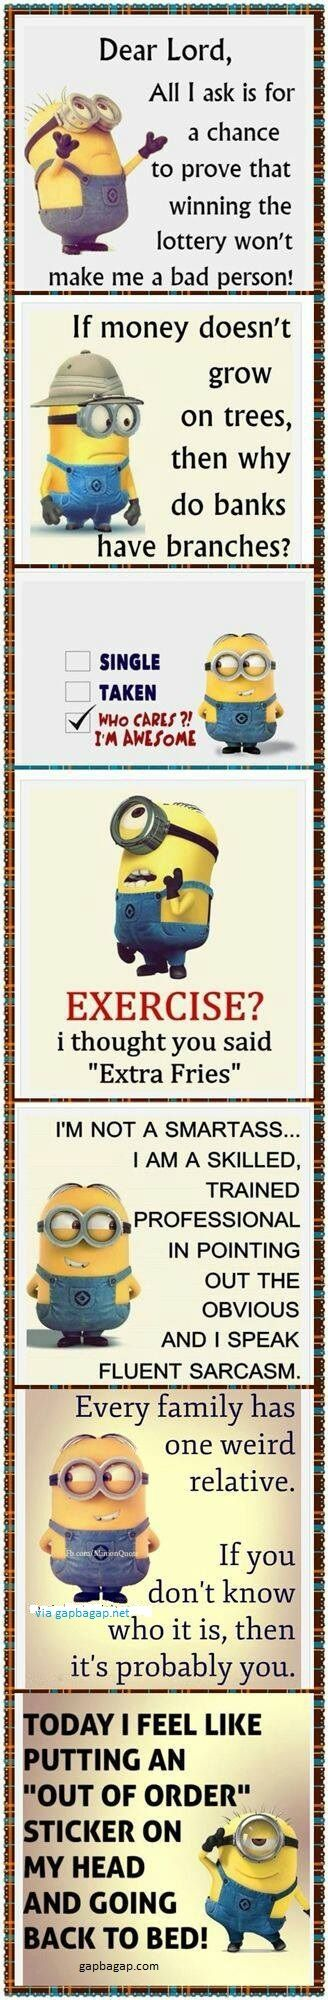 Top 7 Funniest Memes By The #Minions